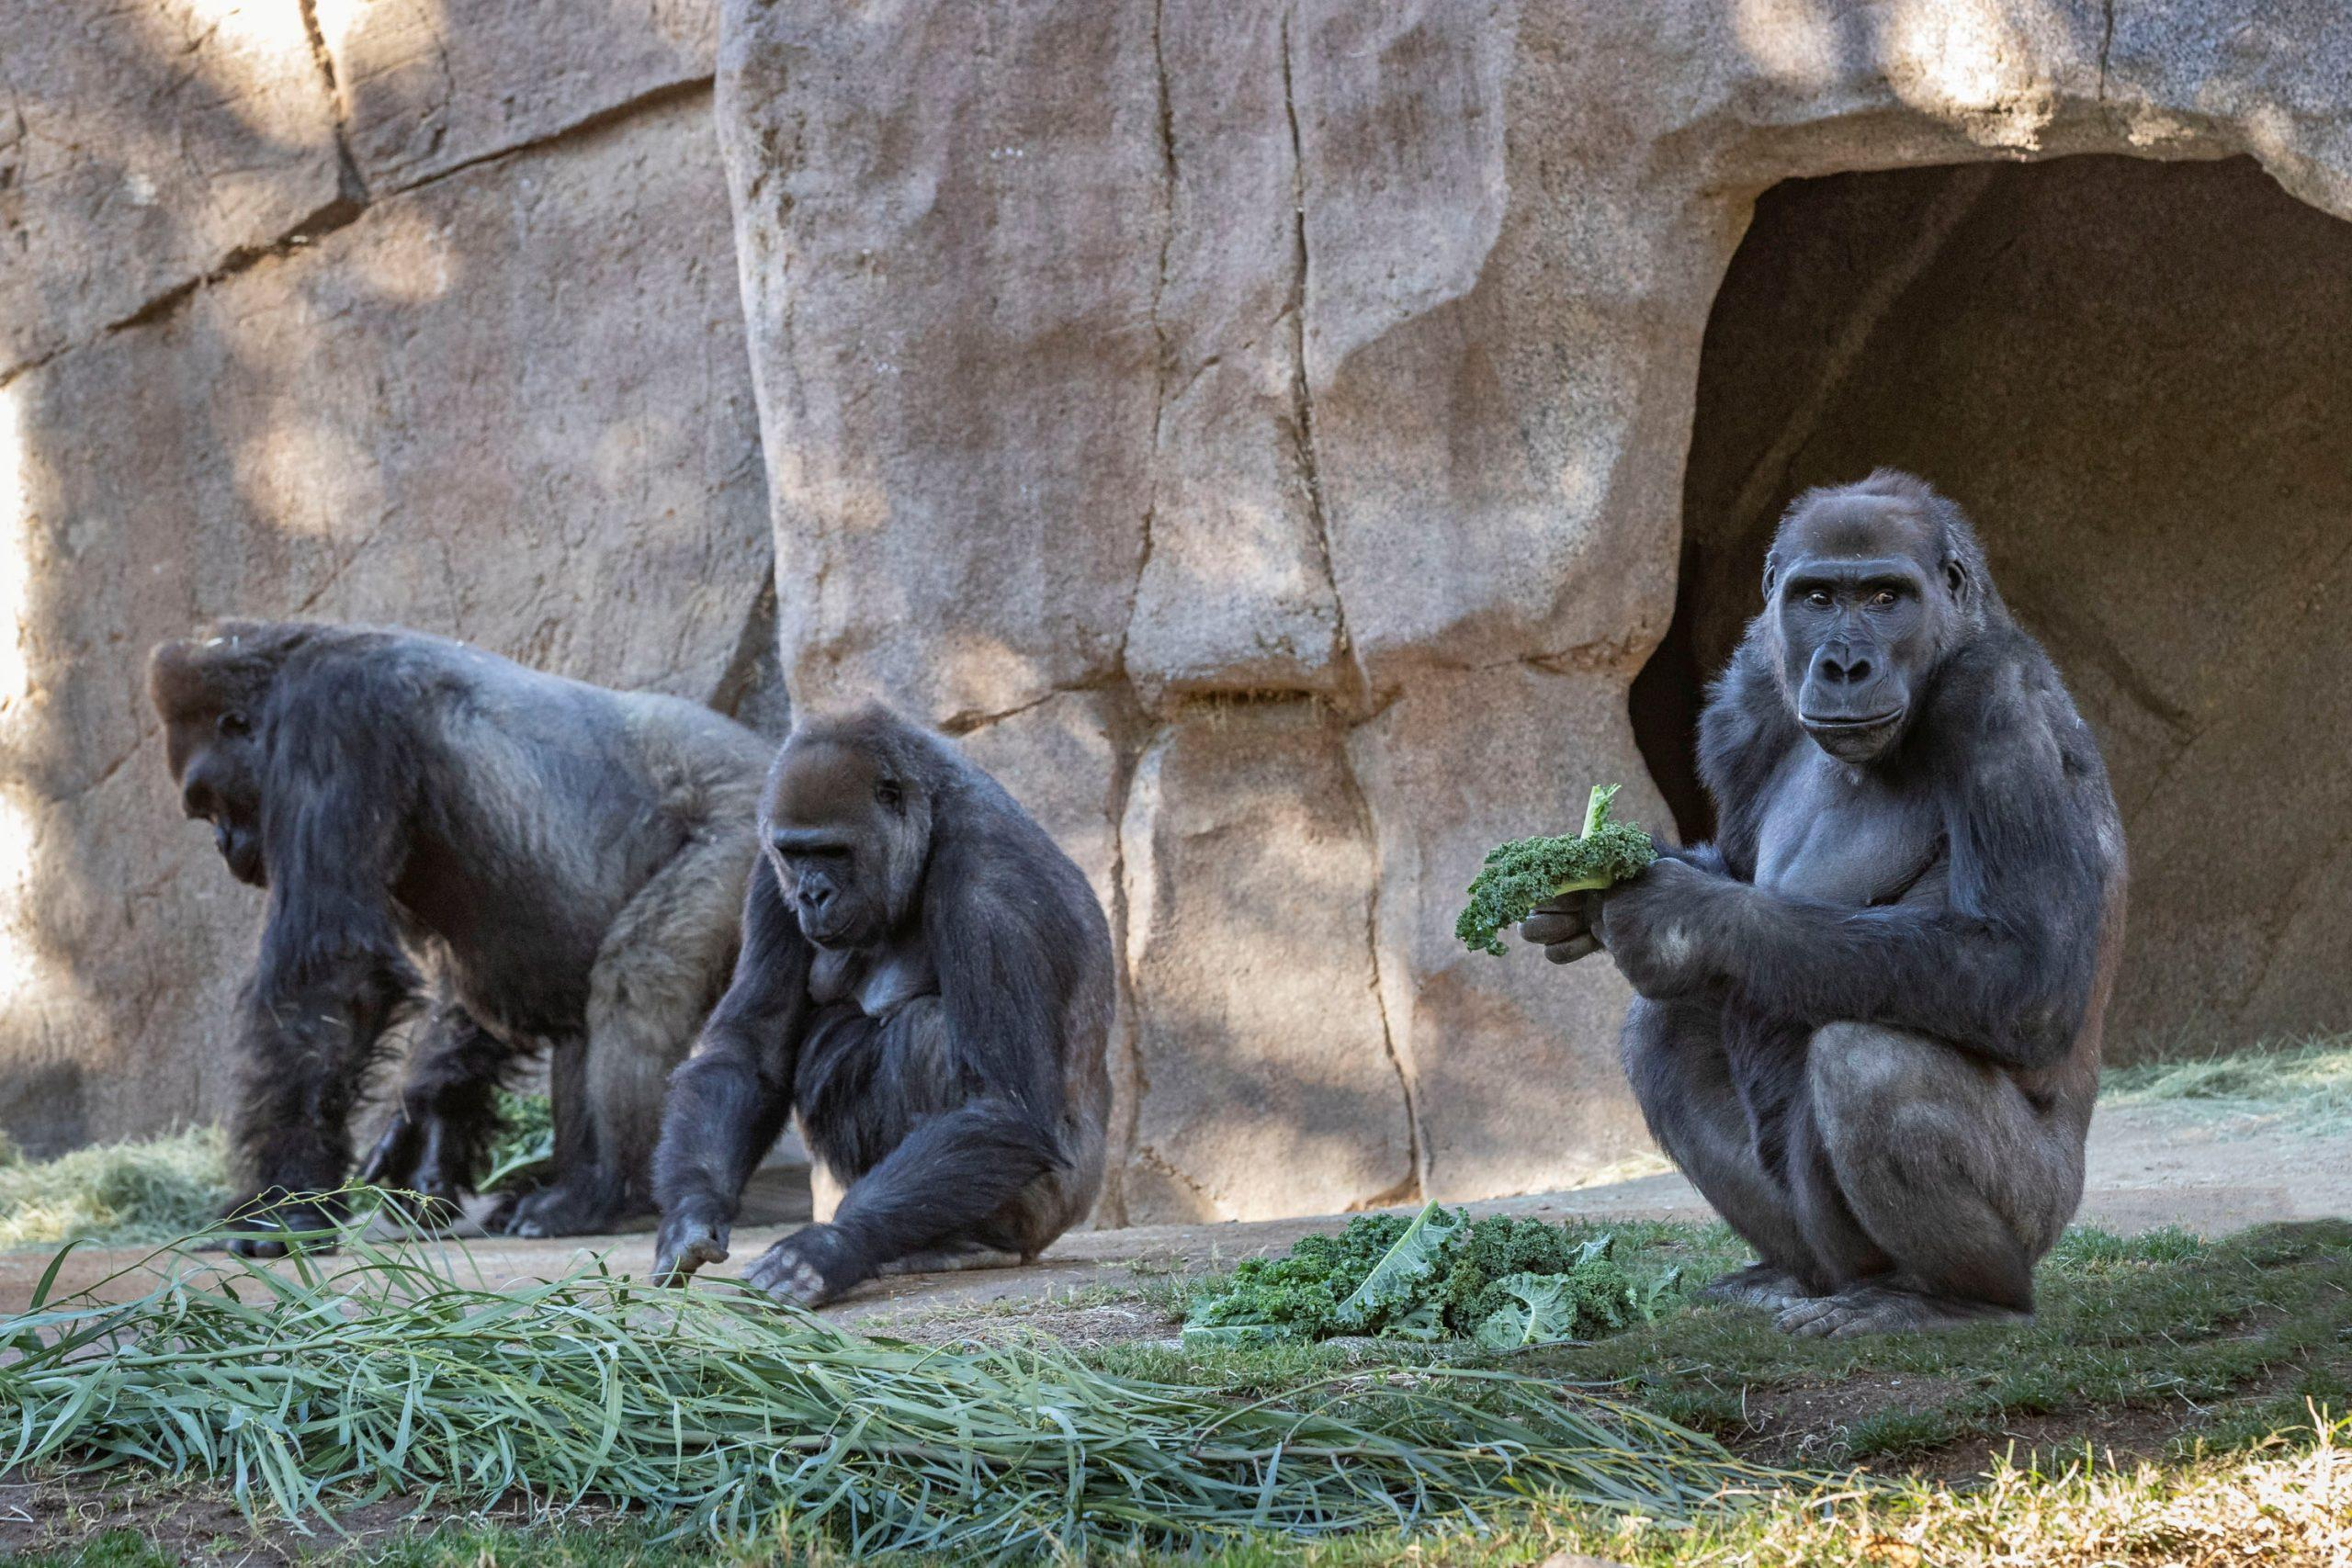 San Diego gorillas recovering from COVID-19, zoo says